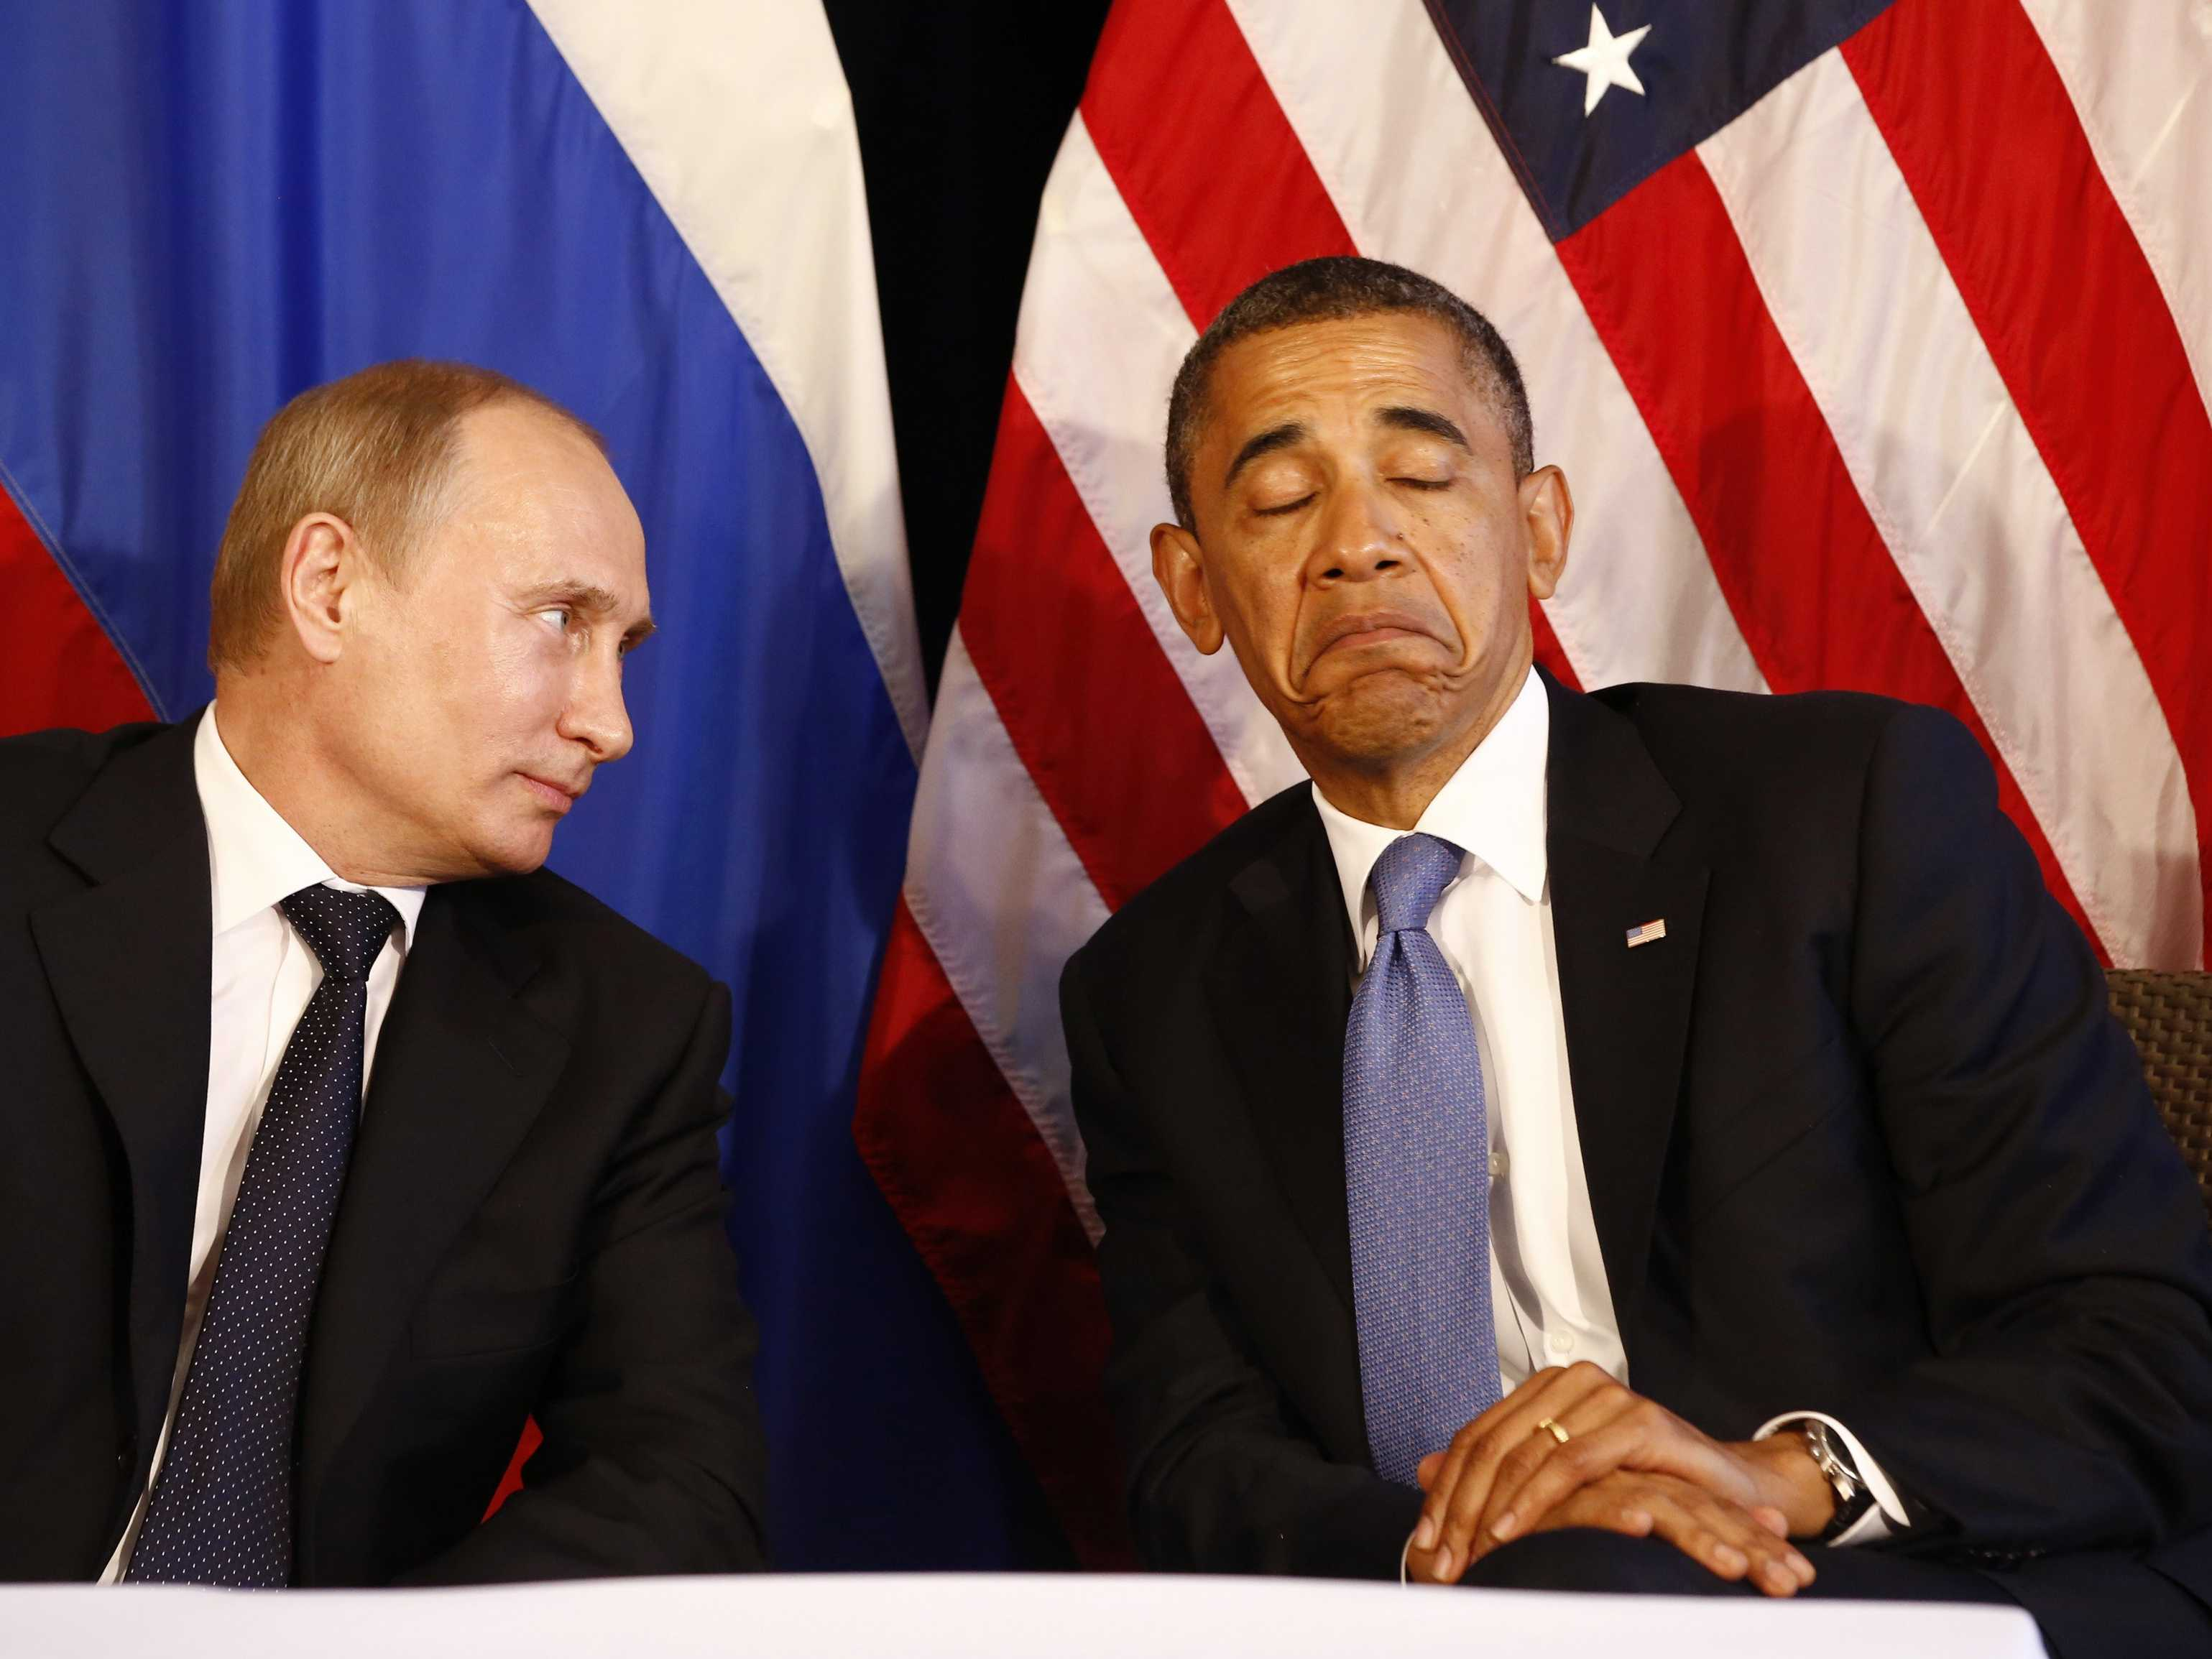 putin-obama-lsanctions-against-russia-yet.jpg